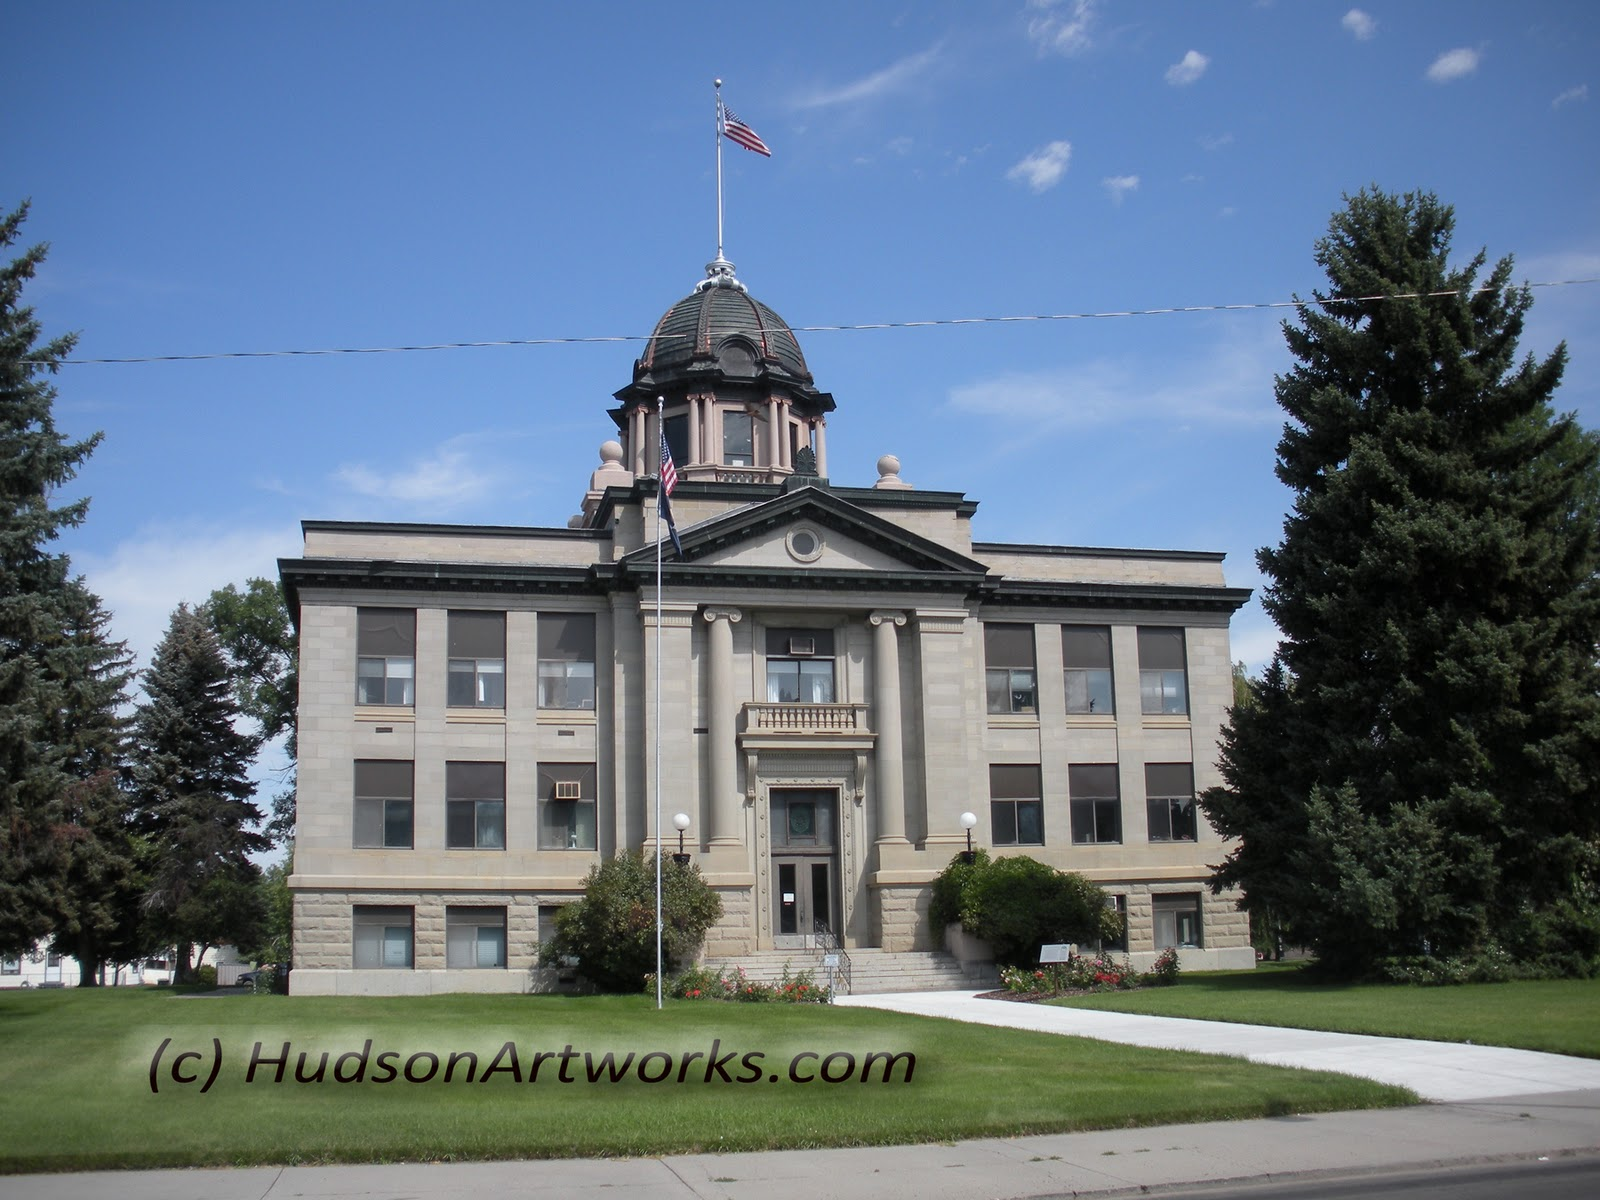 Montana rosebud county forsyth - Here A Another View Of The Rosebud Montana County Courthouse